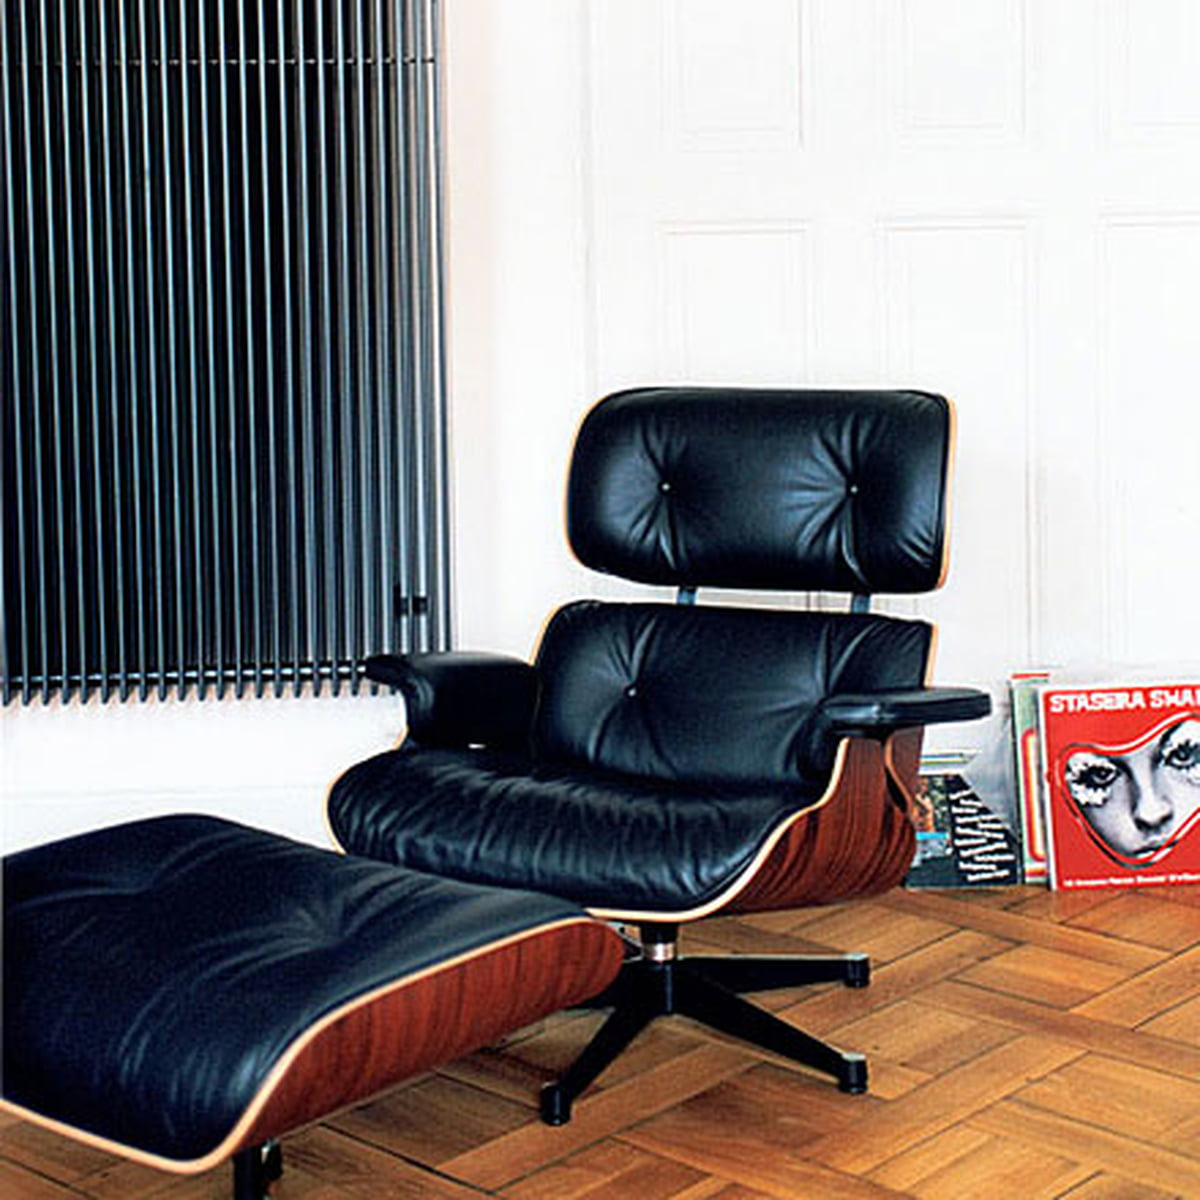 Strange Vitra Lounge Chair Ottoman Polished Black Sides American Cherrywood Chocolate Classic Caraccident5 Cool Chair Designs And Ideas Caraccident5Info